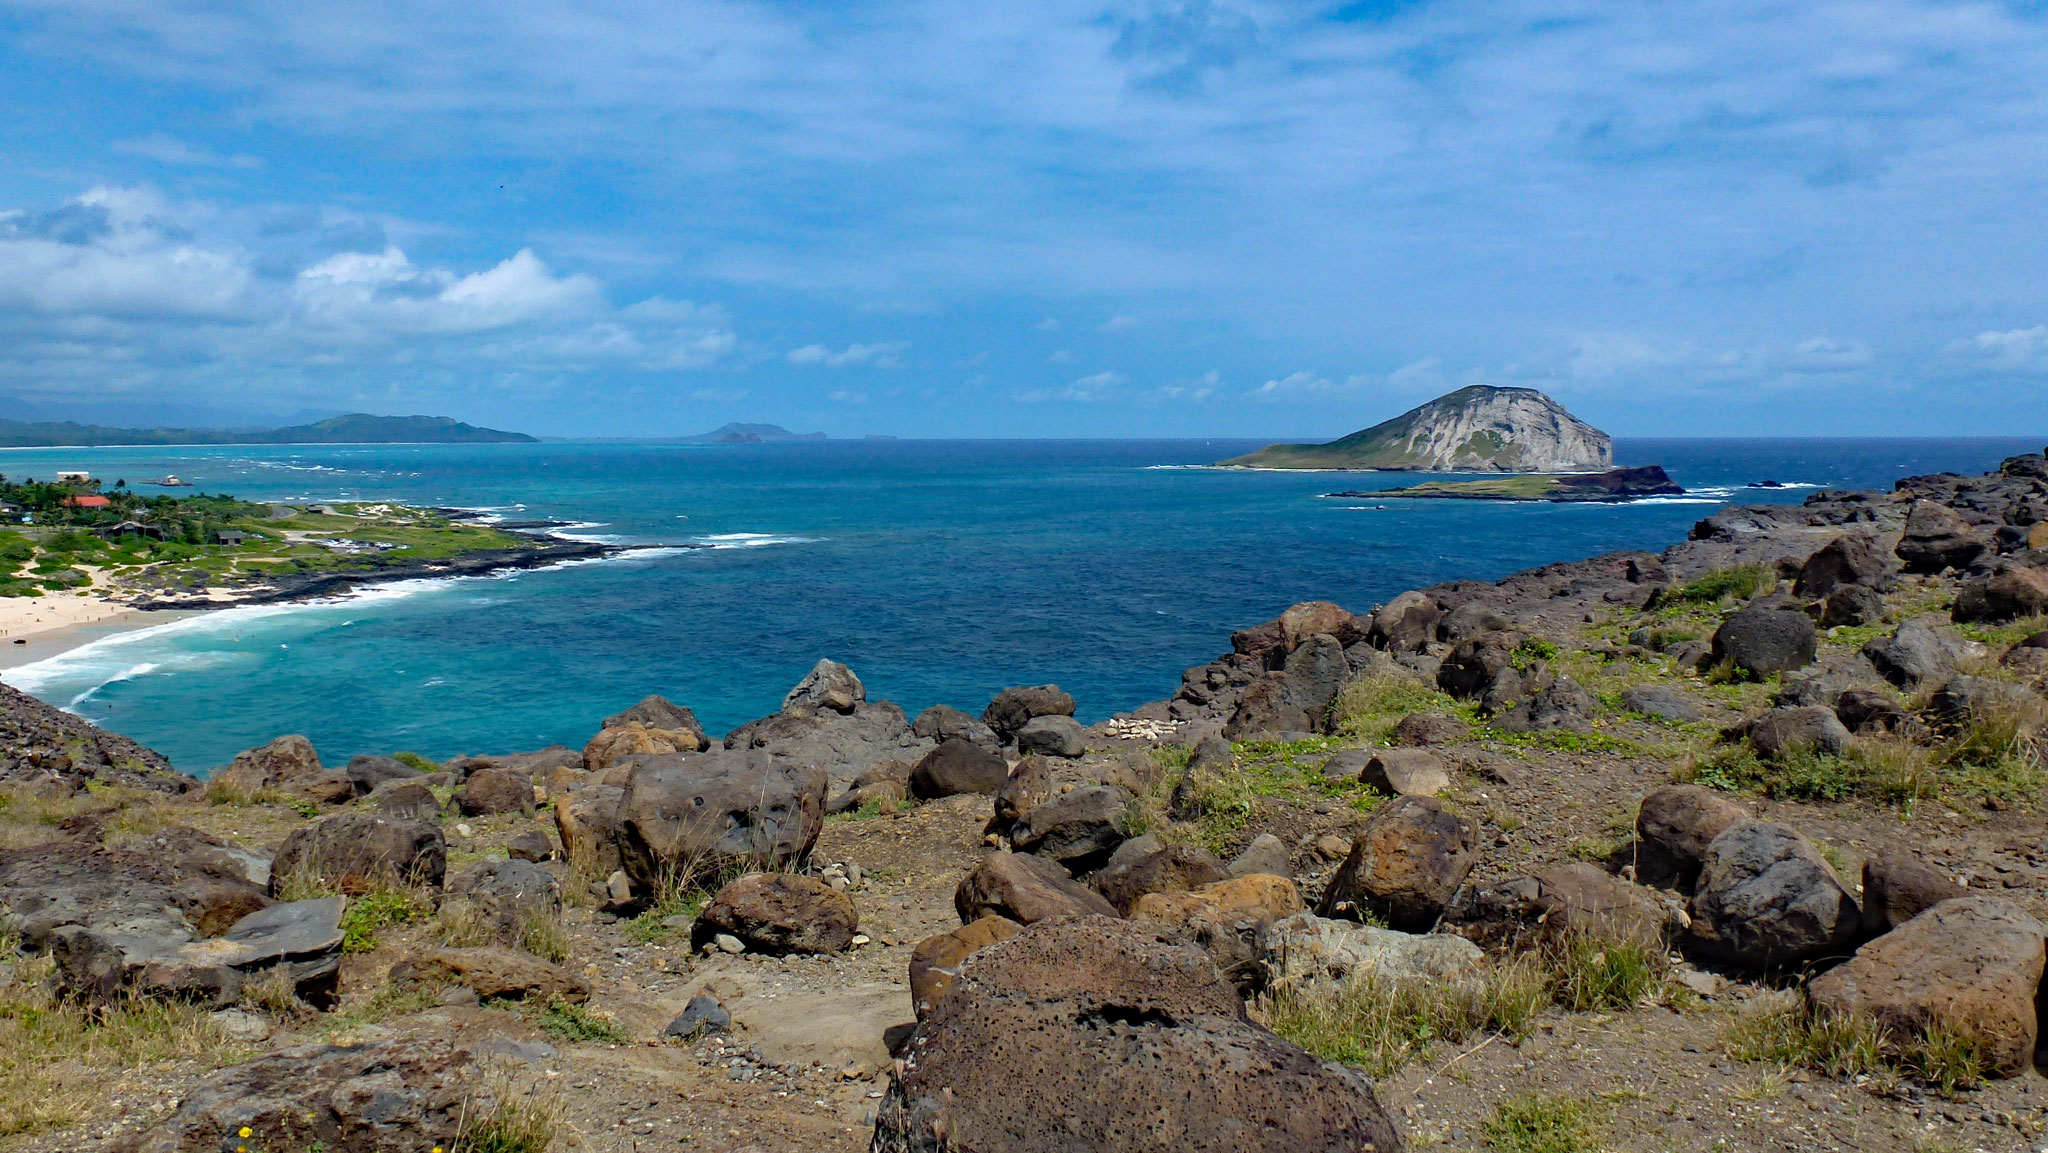 View from Makapuu Lighthouse Trail